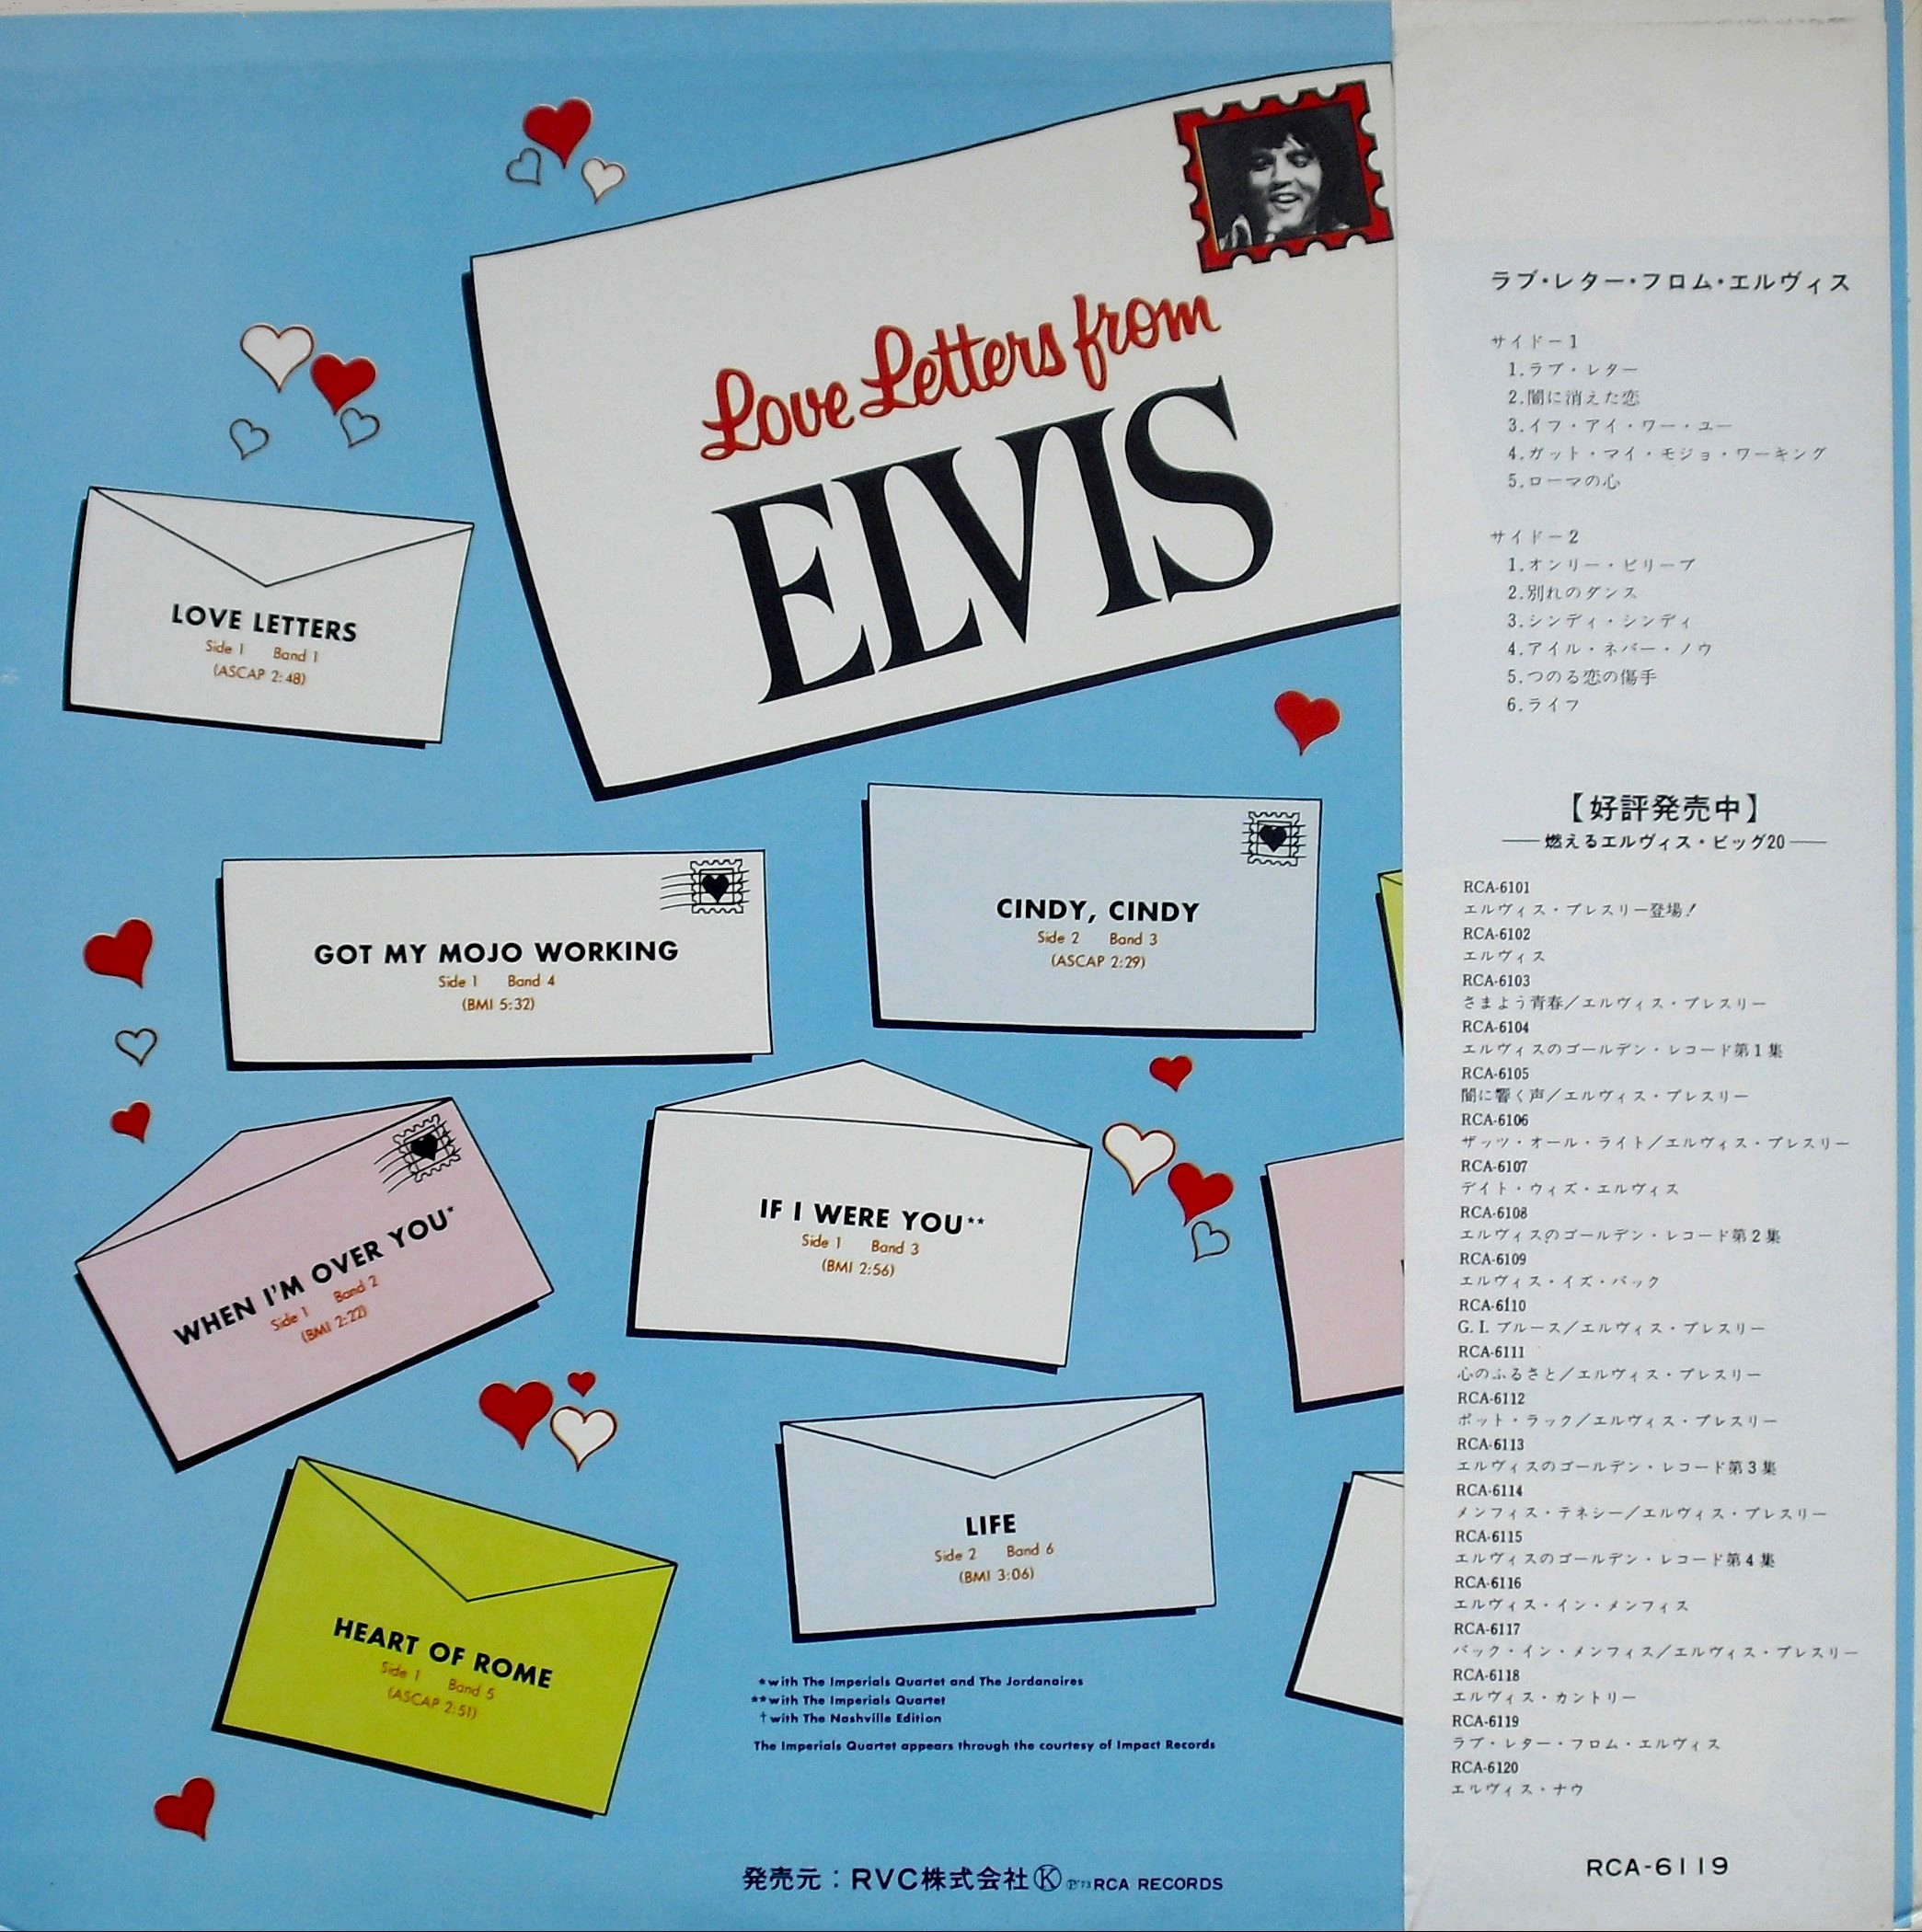 LOVE LETTERS FROM ELVIS 028lige